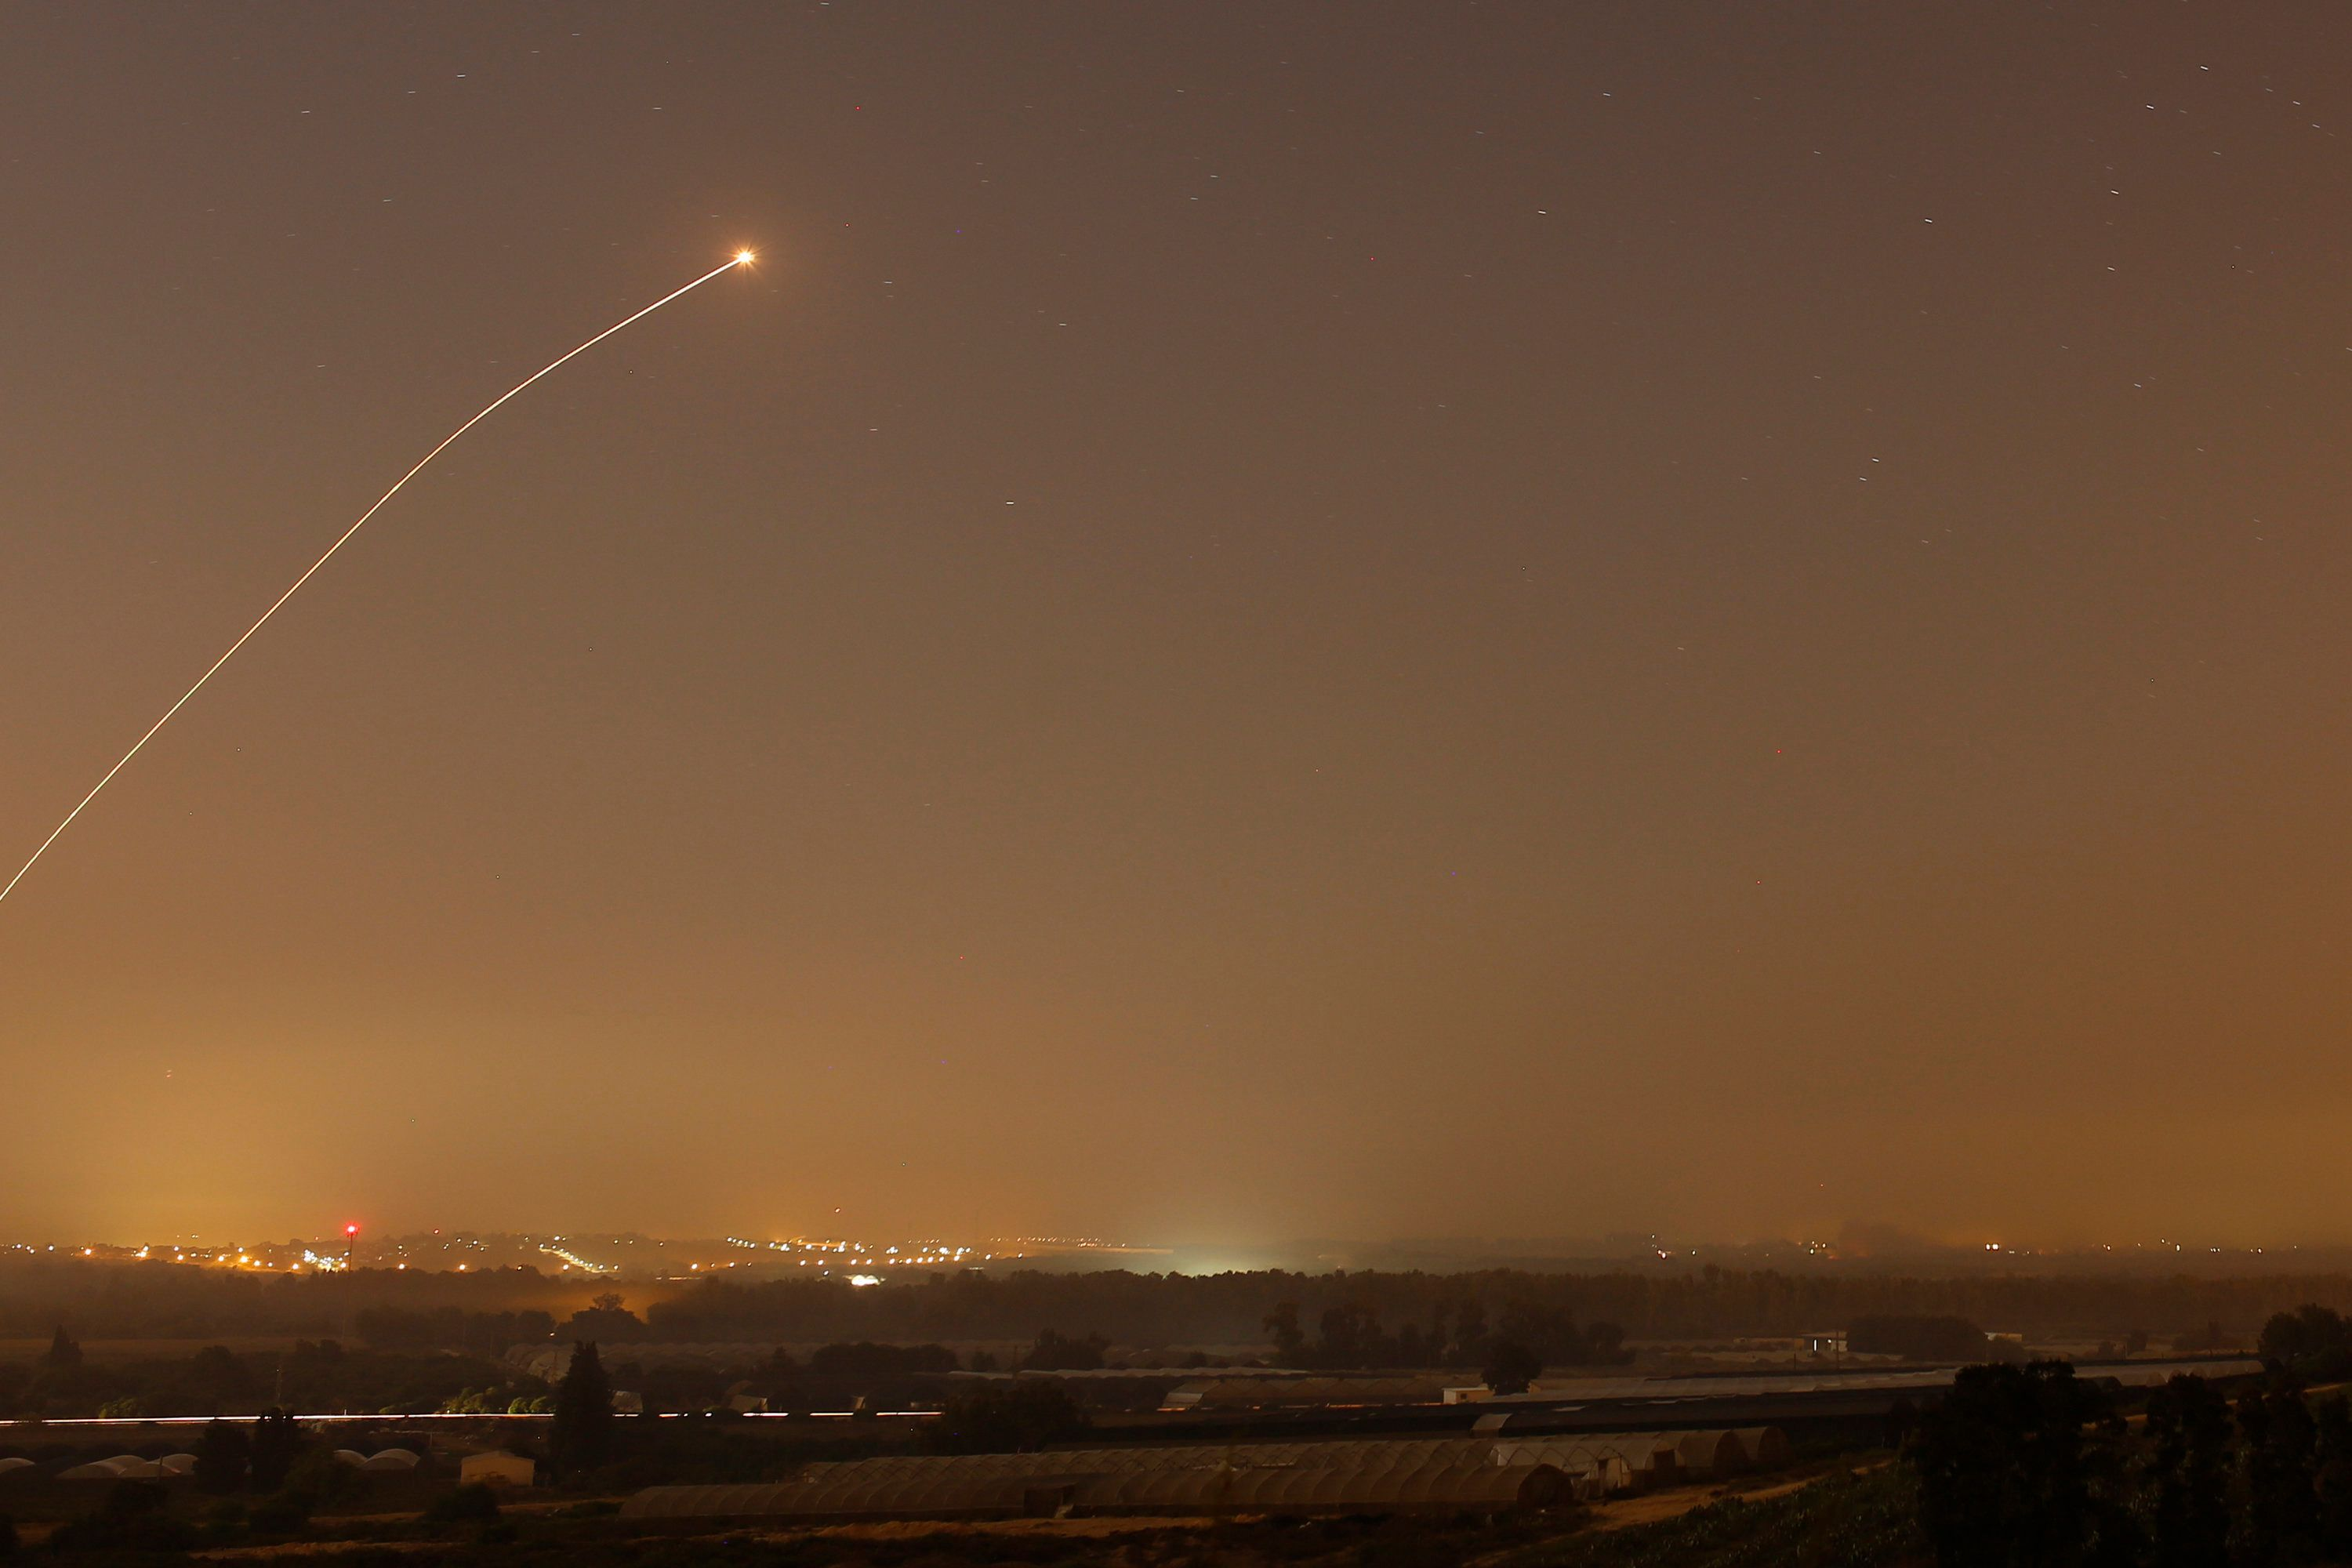 An interception by the Iron Dome anti-missile system is seen as rockets are launched from Gaza towards Israel before a 72-hour ceasefire was due to expire August 13, 2014. At least two rockets fired from the Gaza Strip struck Israel on Wednesday, moments before a three-day truce was set to expire, police said. Spokesman Micky Rosenfeld said two rockets landed in open areas causing no damage or casualties. The attacks occurred as Palestinians announced agreement to extend a truce expiring at 2100 gmt Wednesday for another five days. REUTERS/Amir Cohen (ISRAEL - Tags: POLITICS CIVIL UNREST MILITARY CONFLICT TPX IMAGES OF THE DAY)